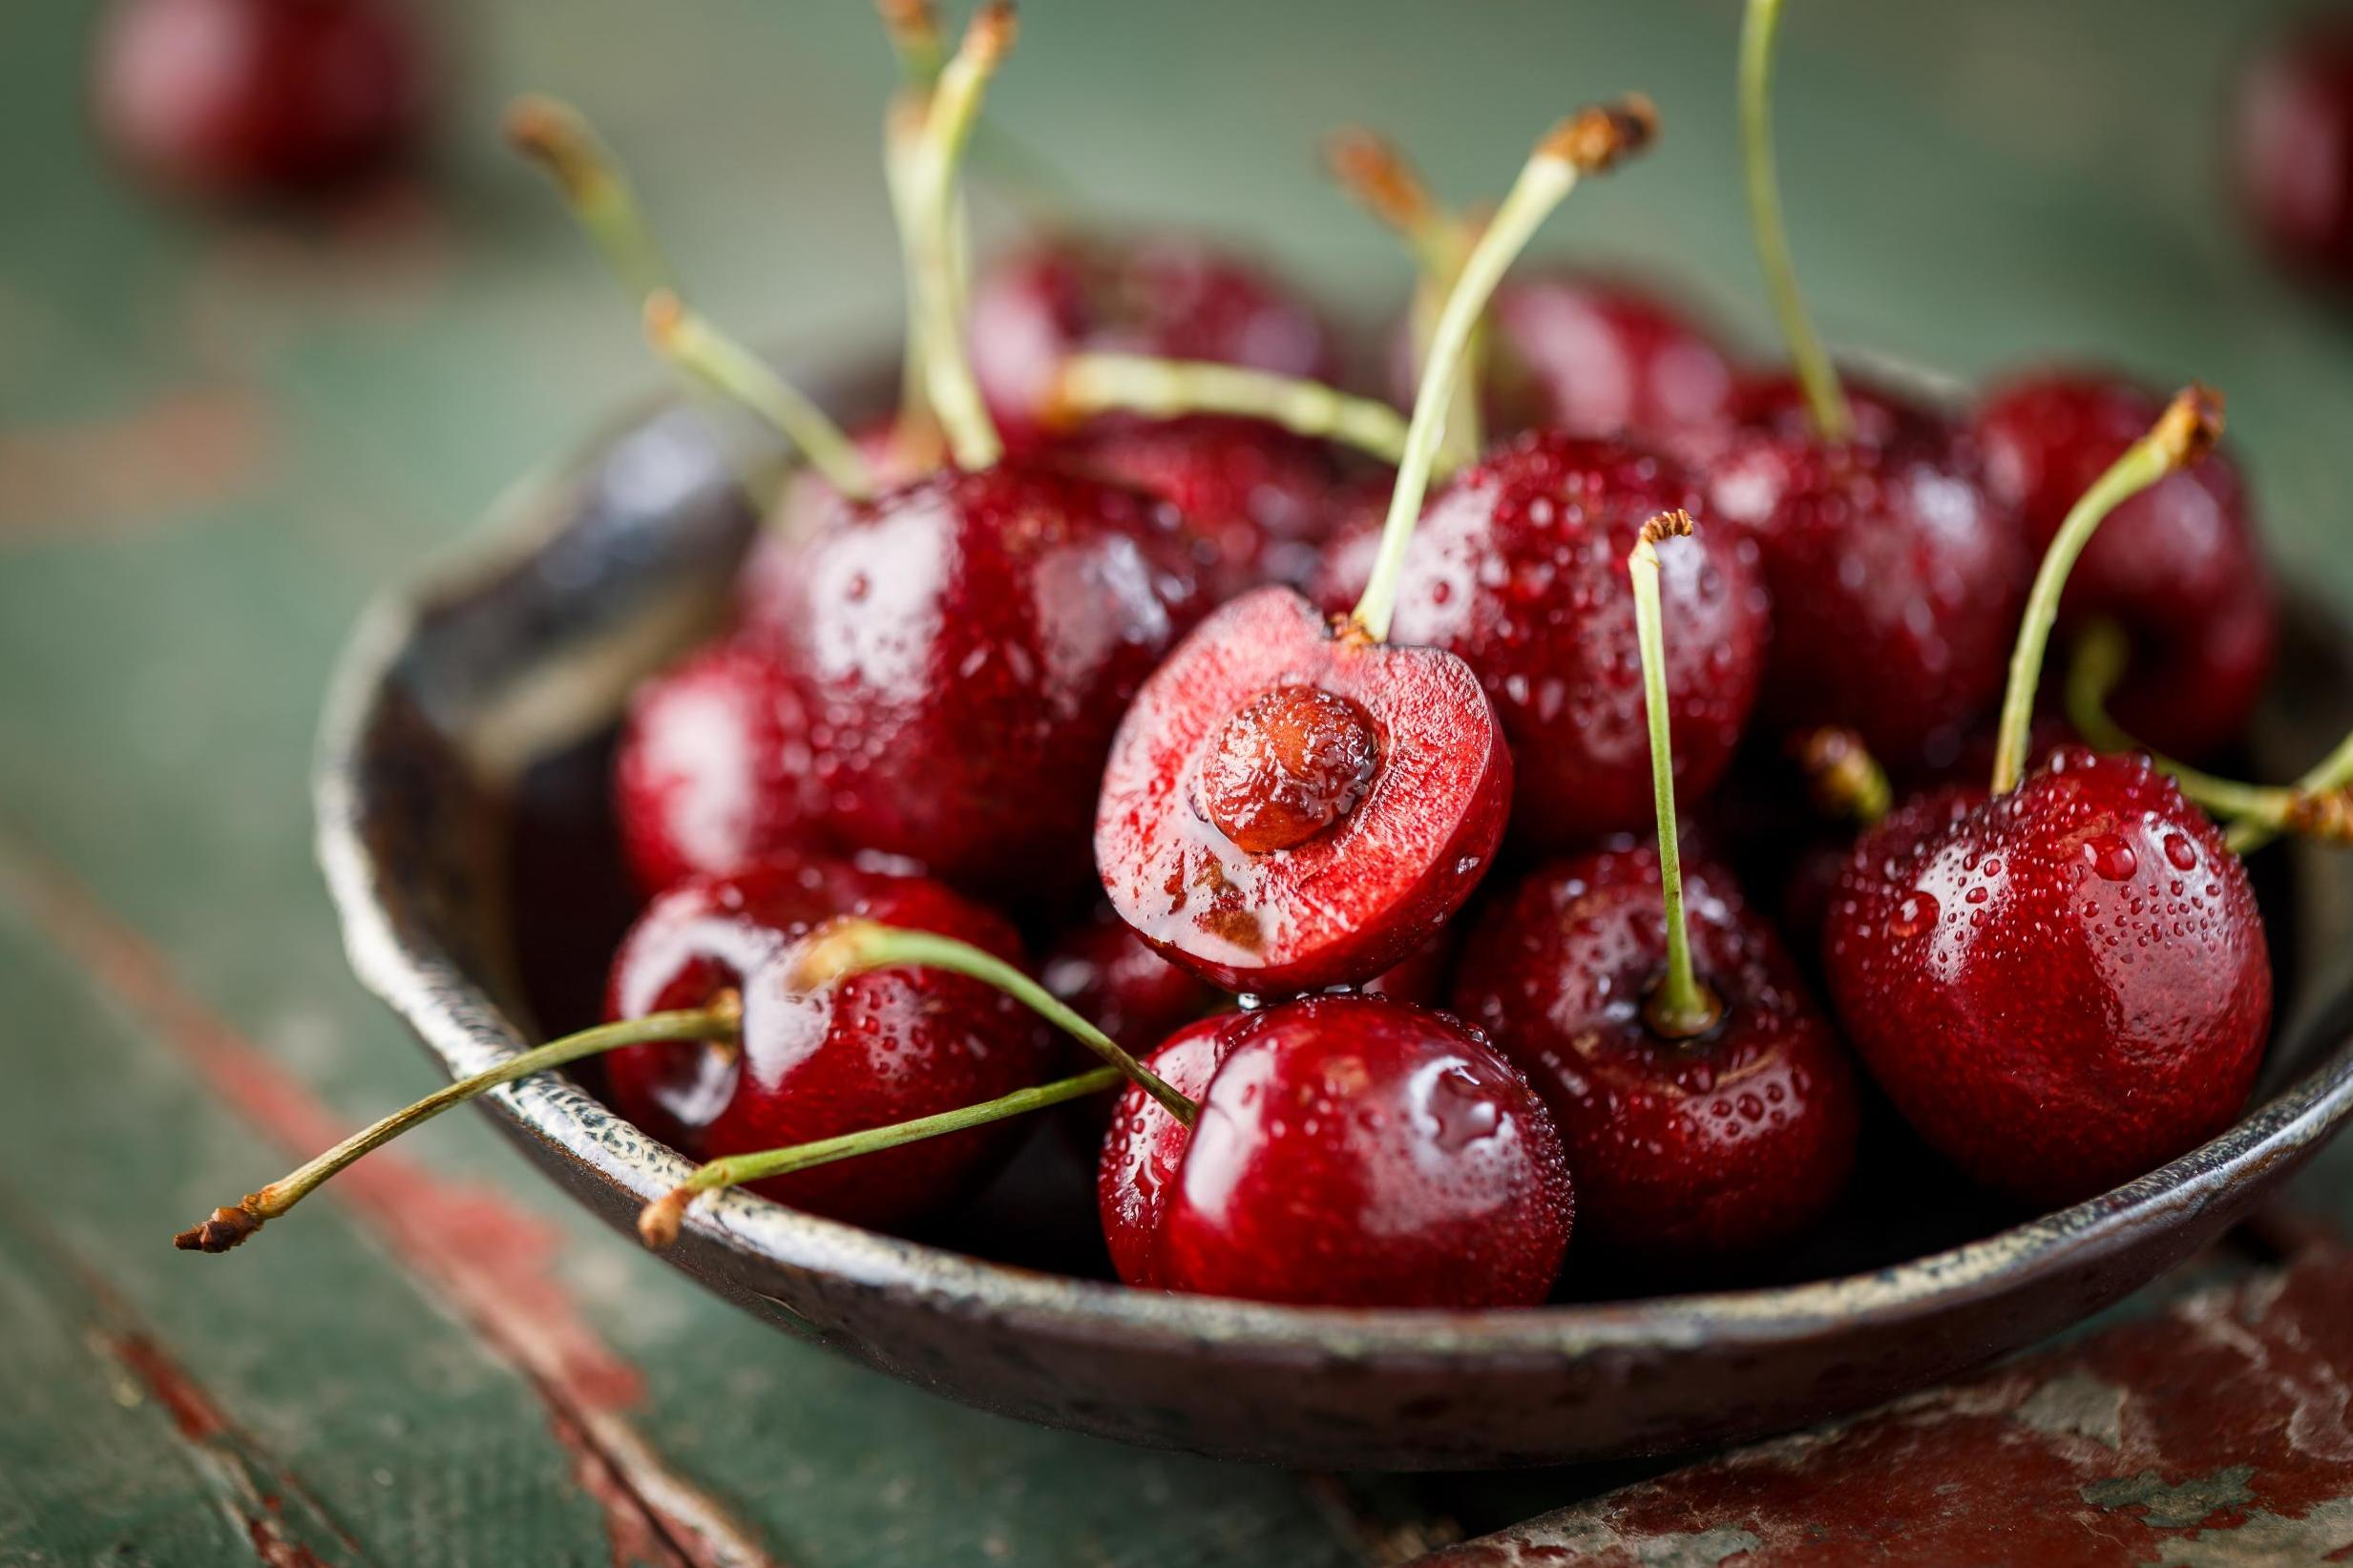 Man nearly dies after eating cherry stones